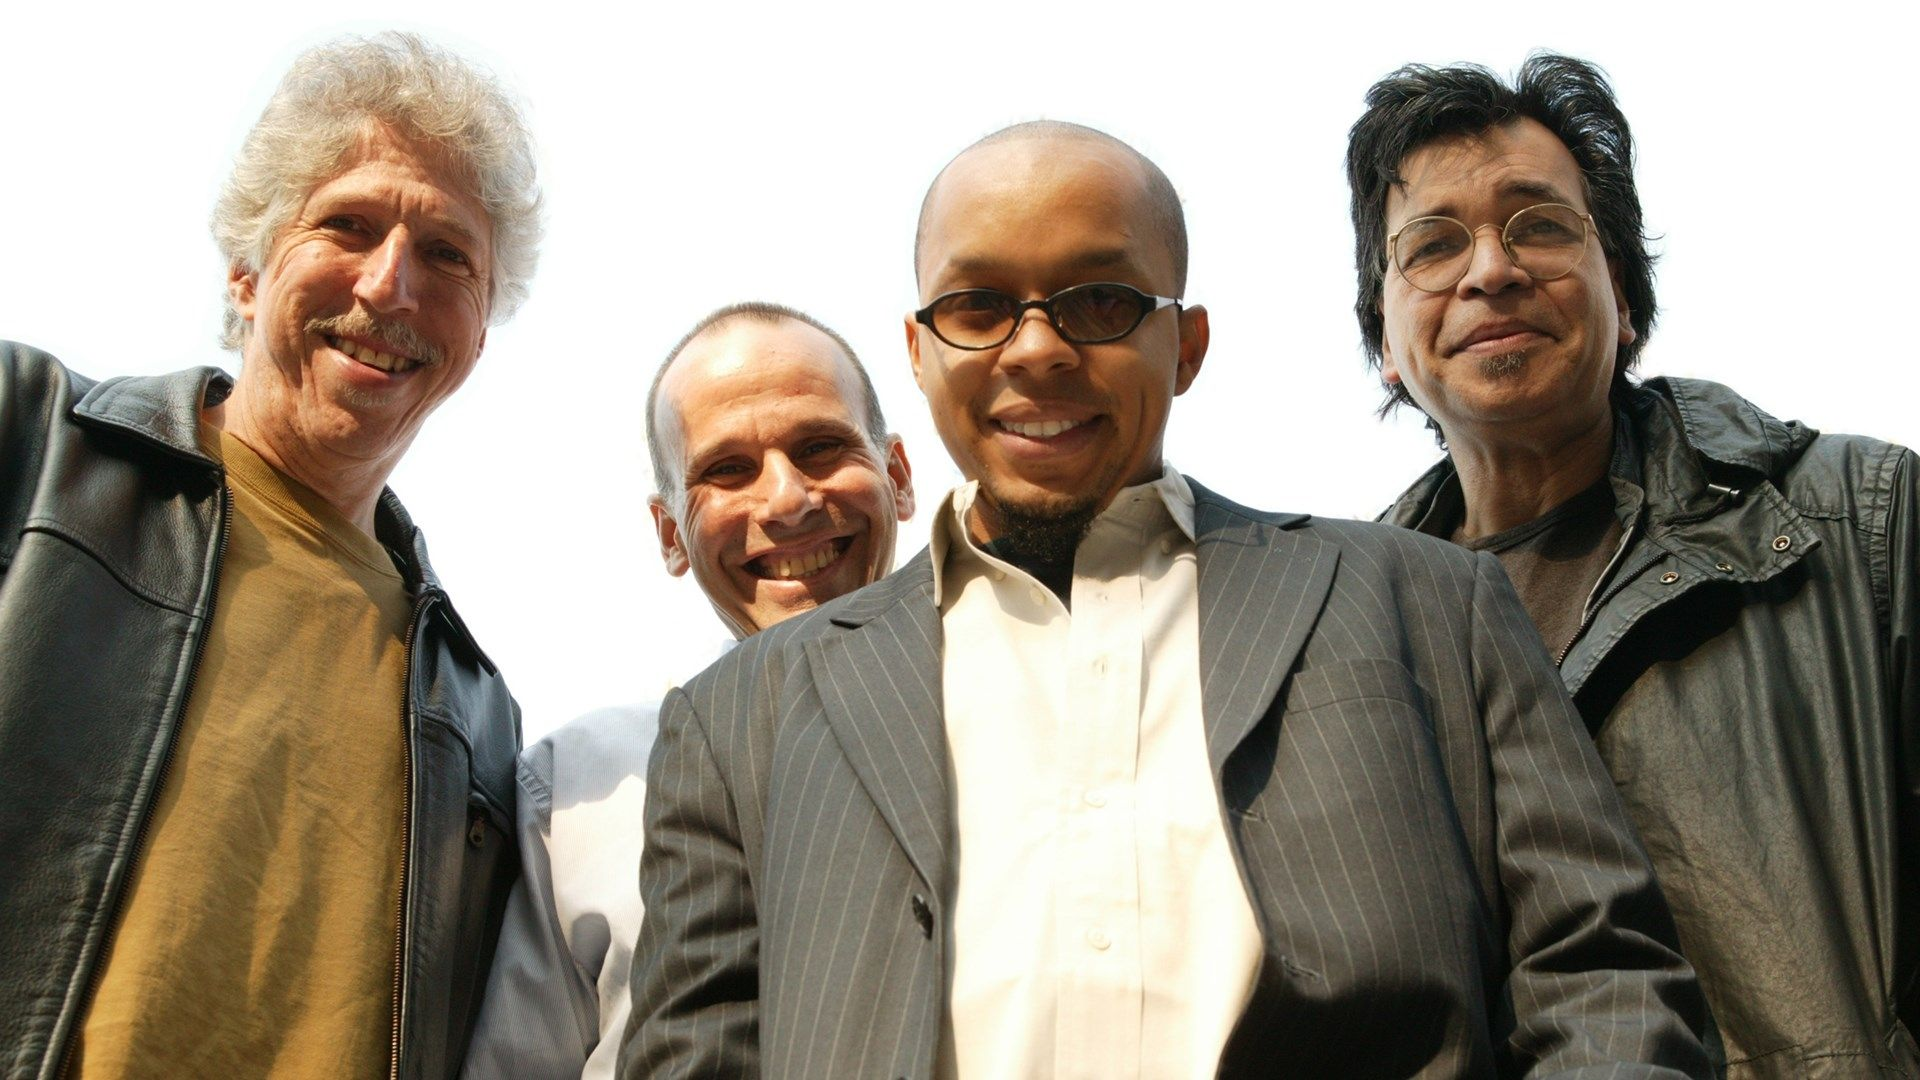 yellowjackets, band, smile - http://www.wallpapers4u.org/yellowjackets-band-smile/